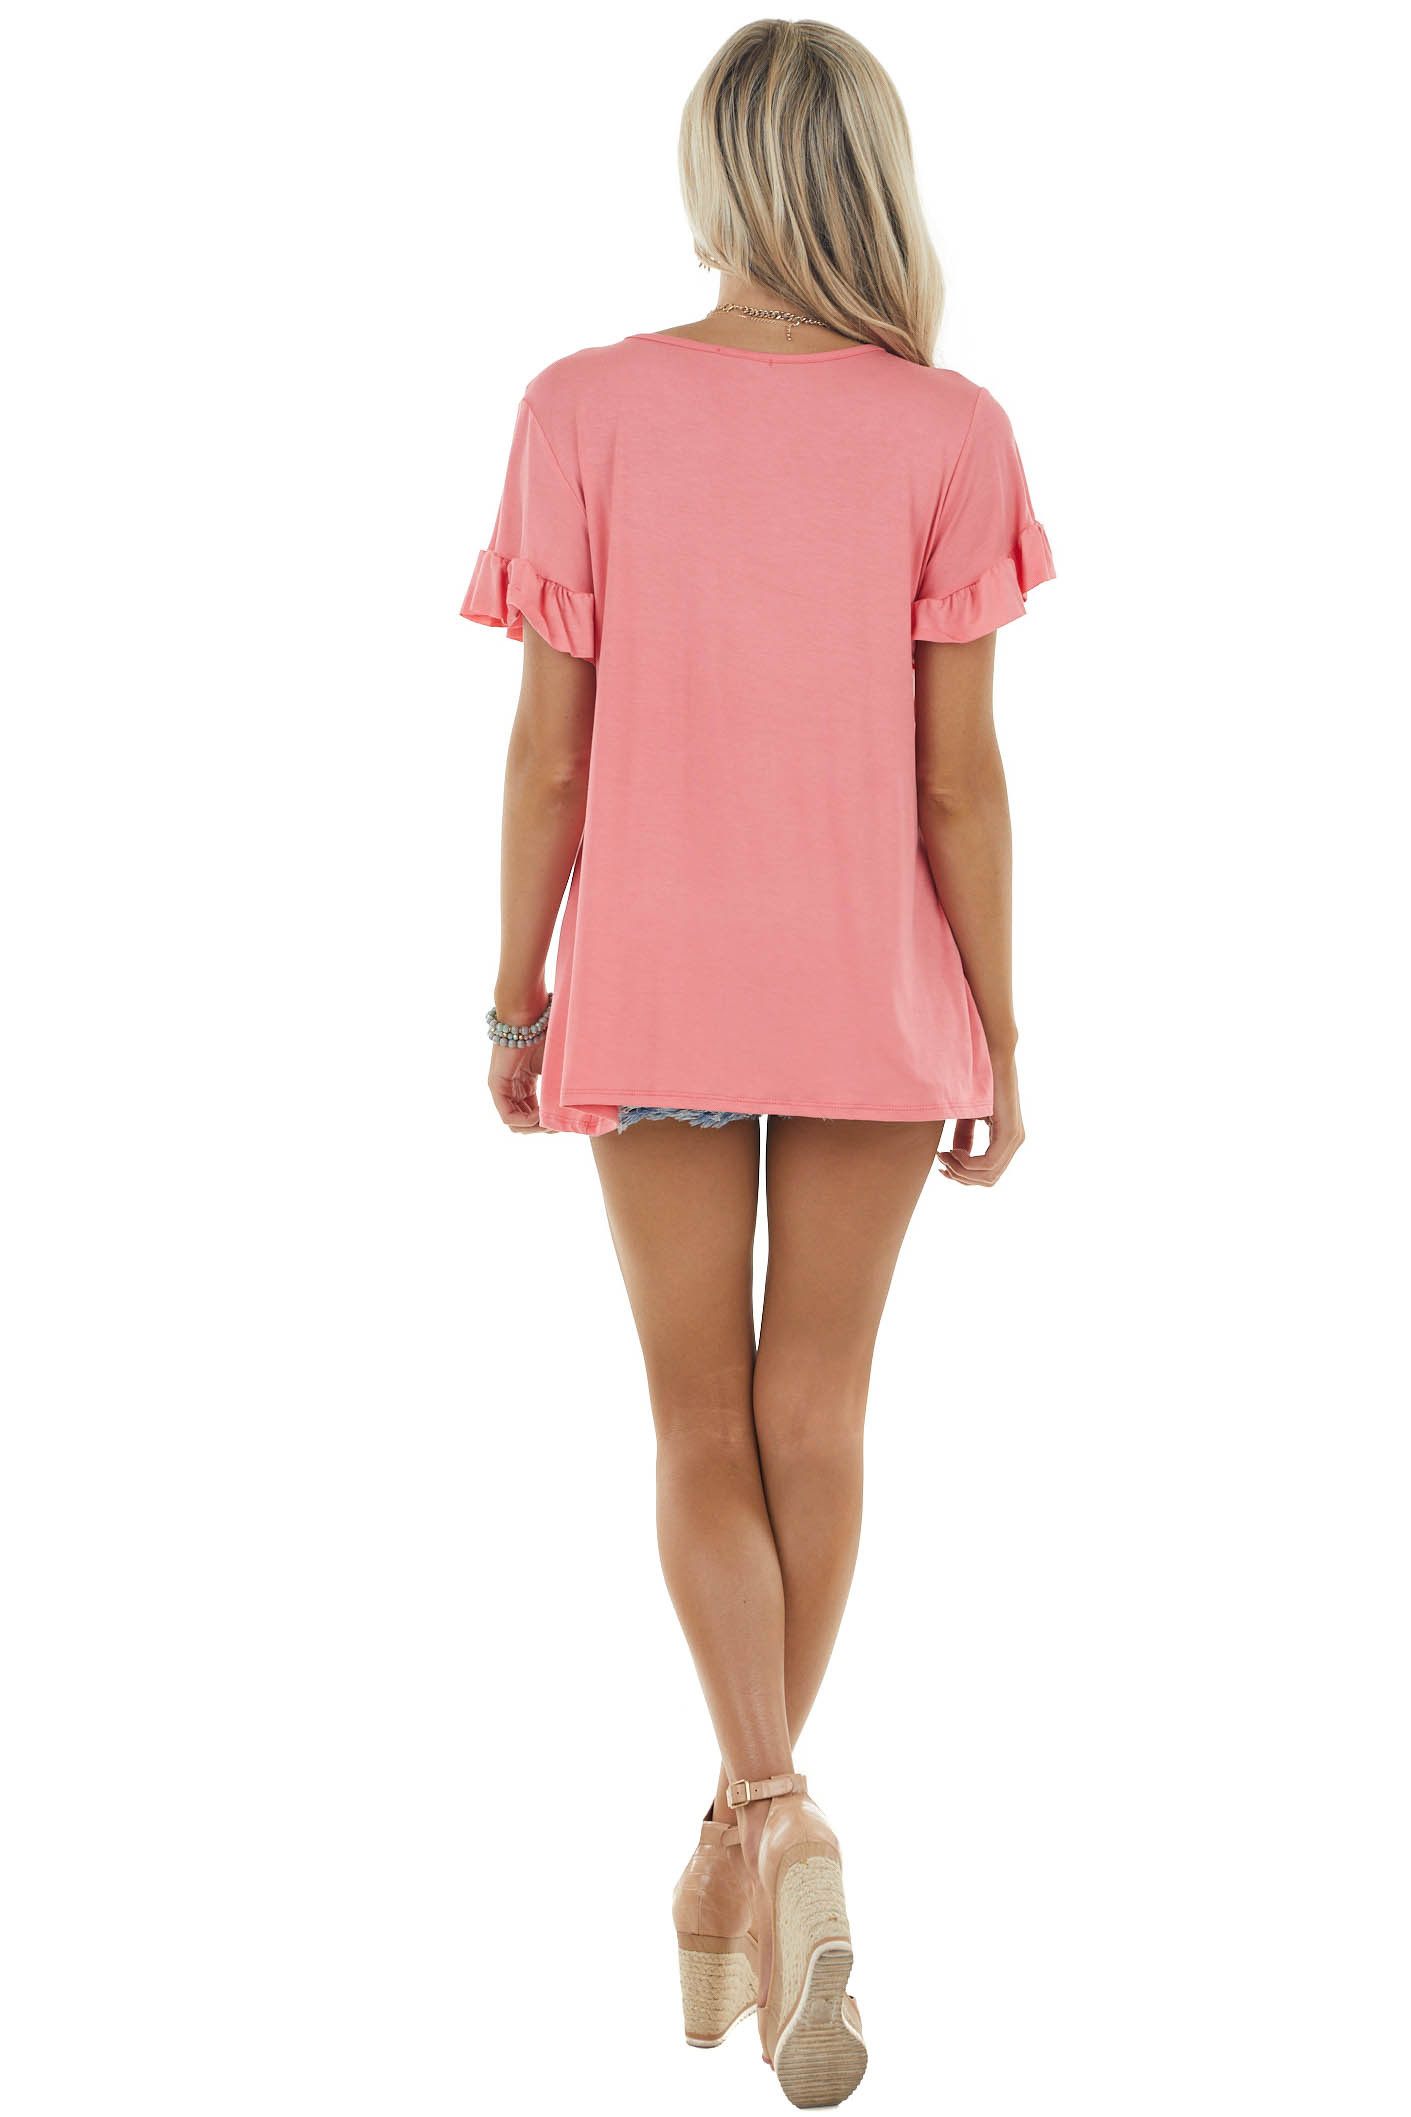 Coral Babydoll V Neck Knit Top with Short Sleeves